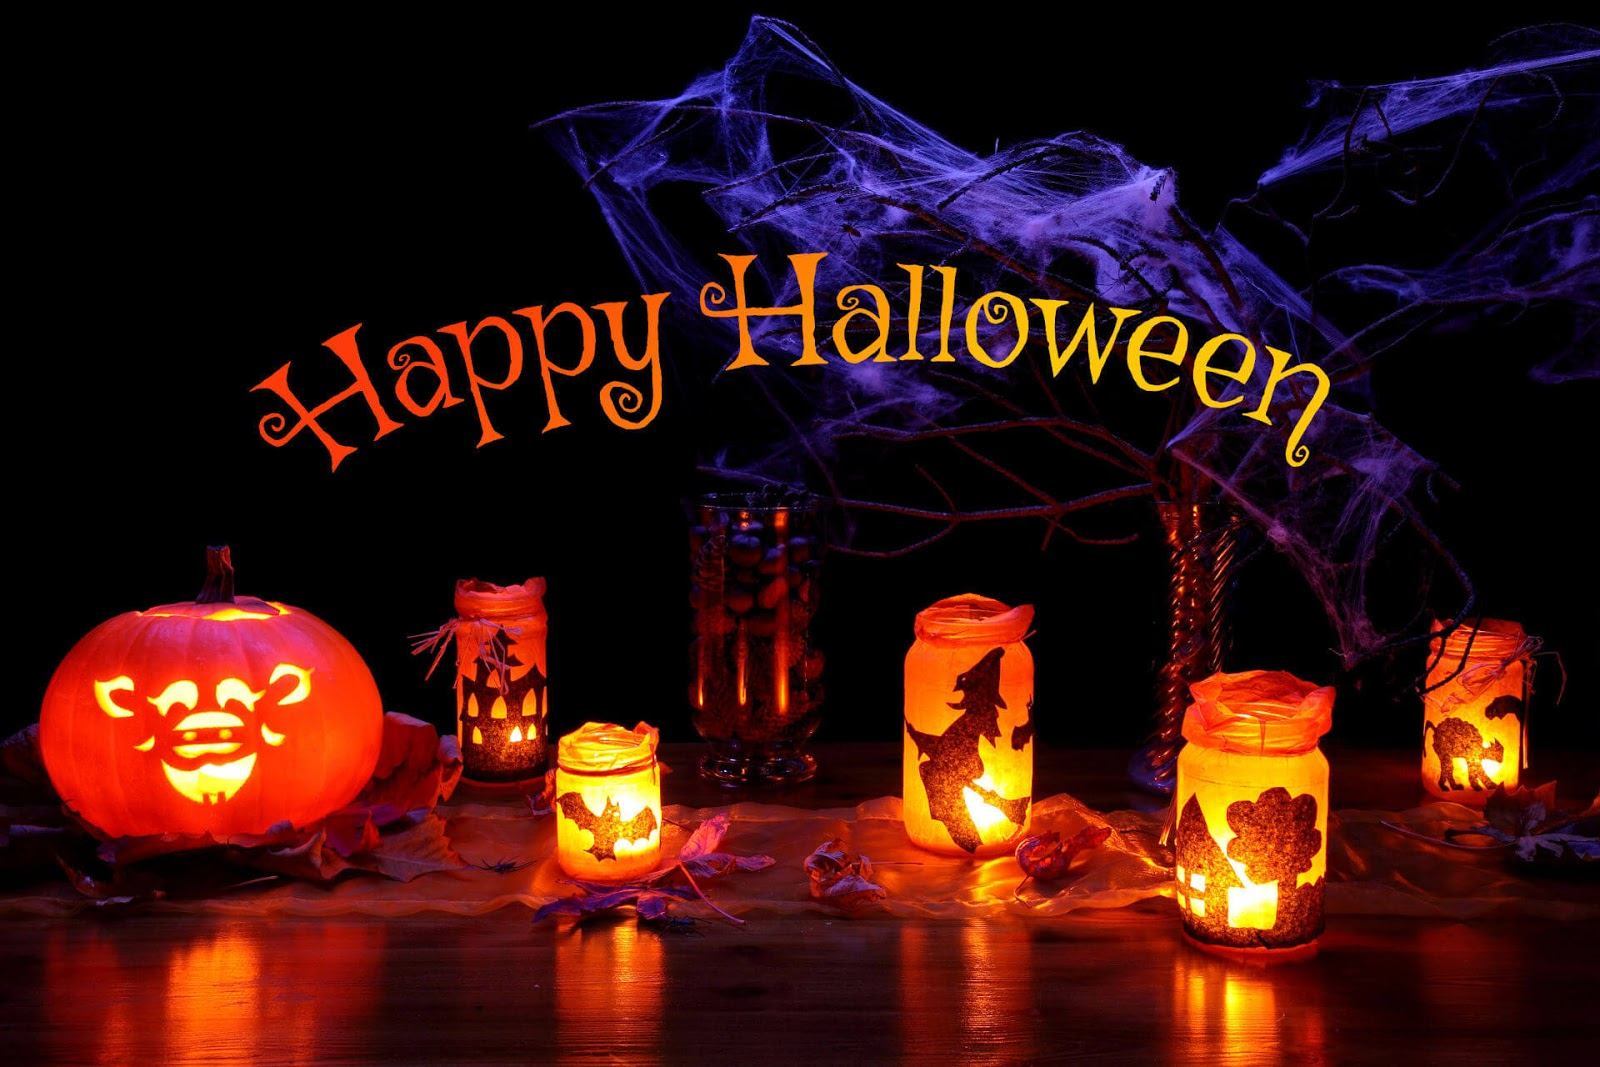 Happy Halloween 2017 images background wallpaper posters 1600x1067